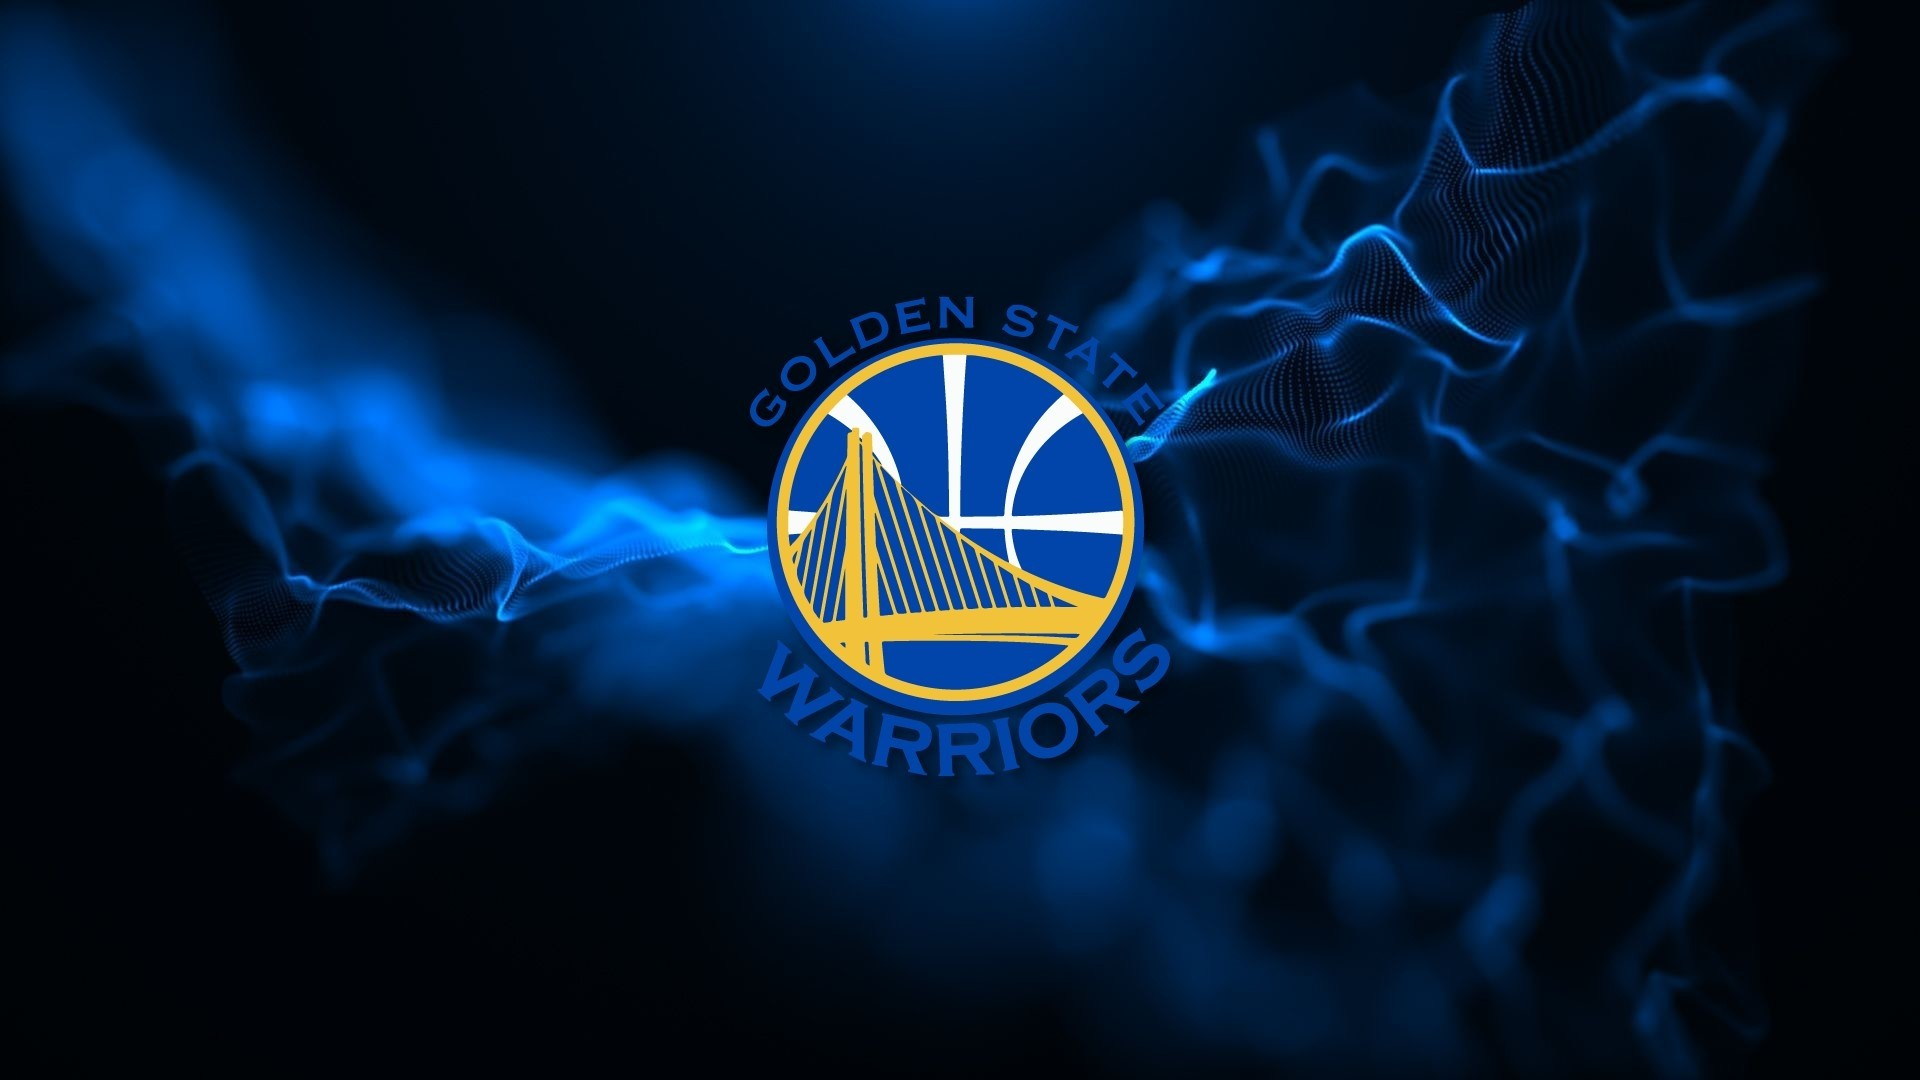 Golden State Warriors Full HD Wallpaper